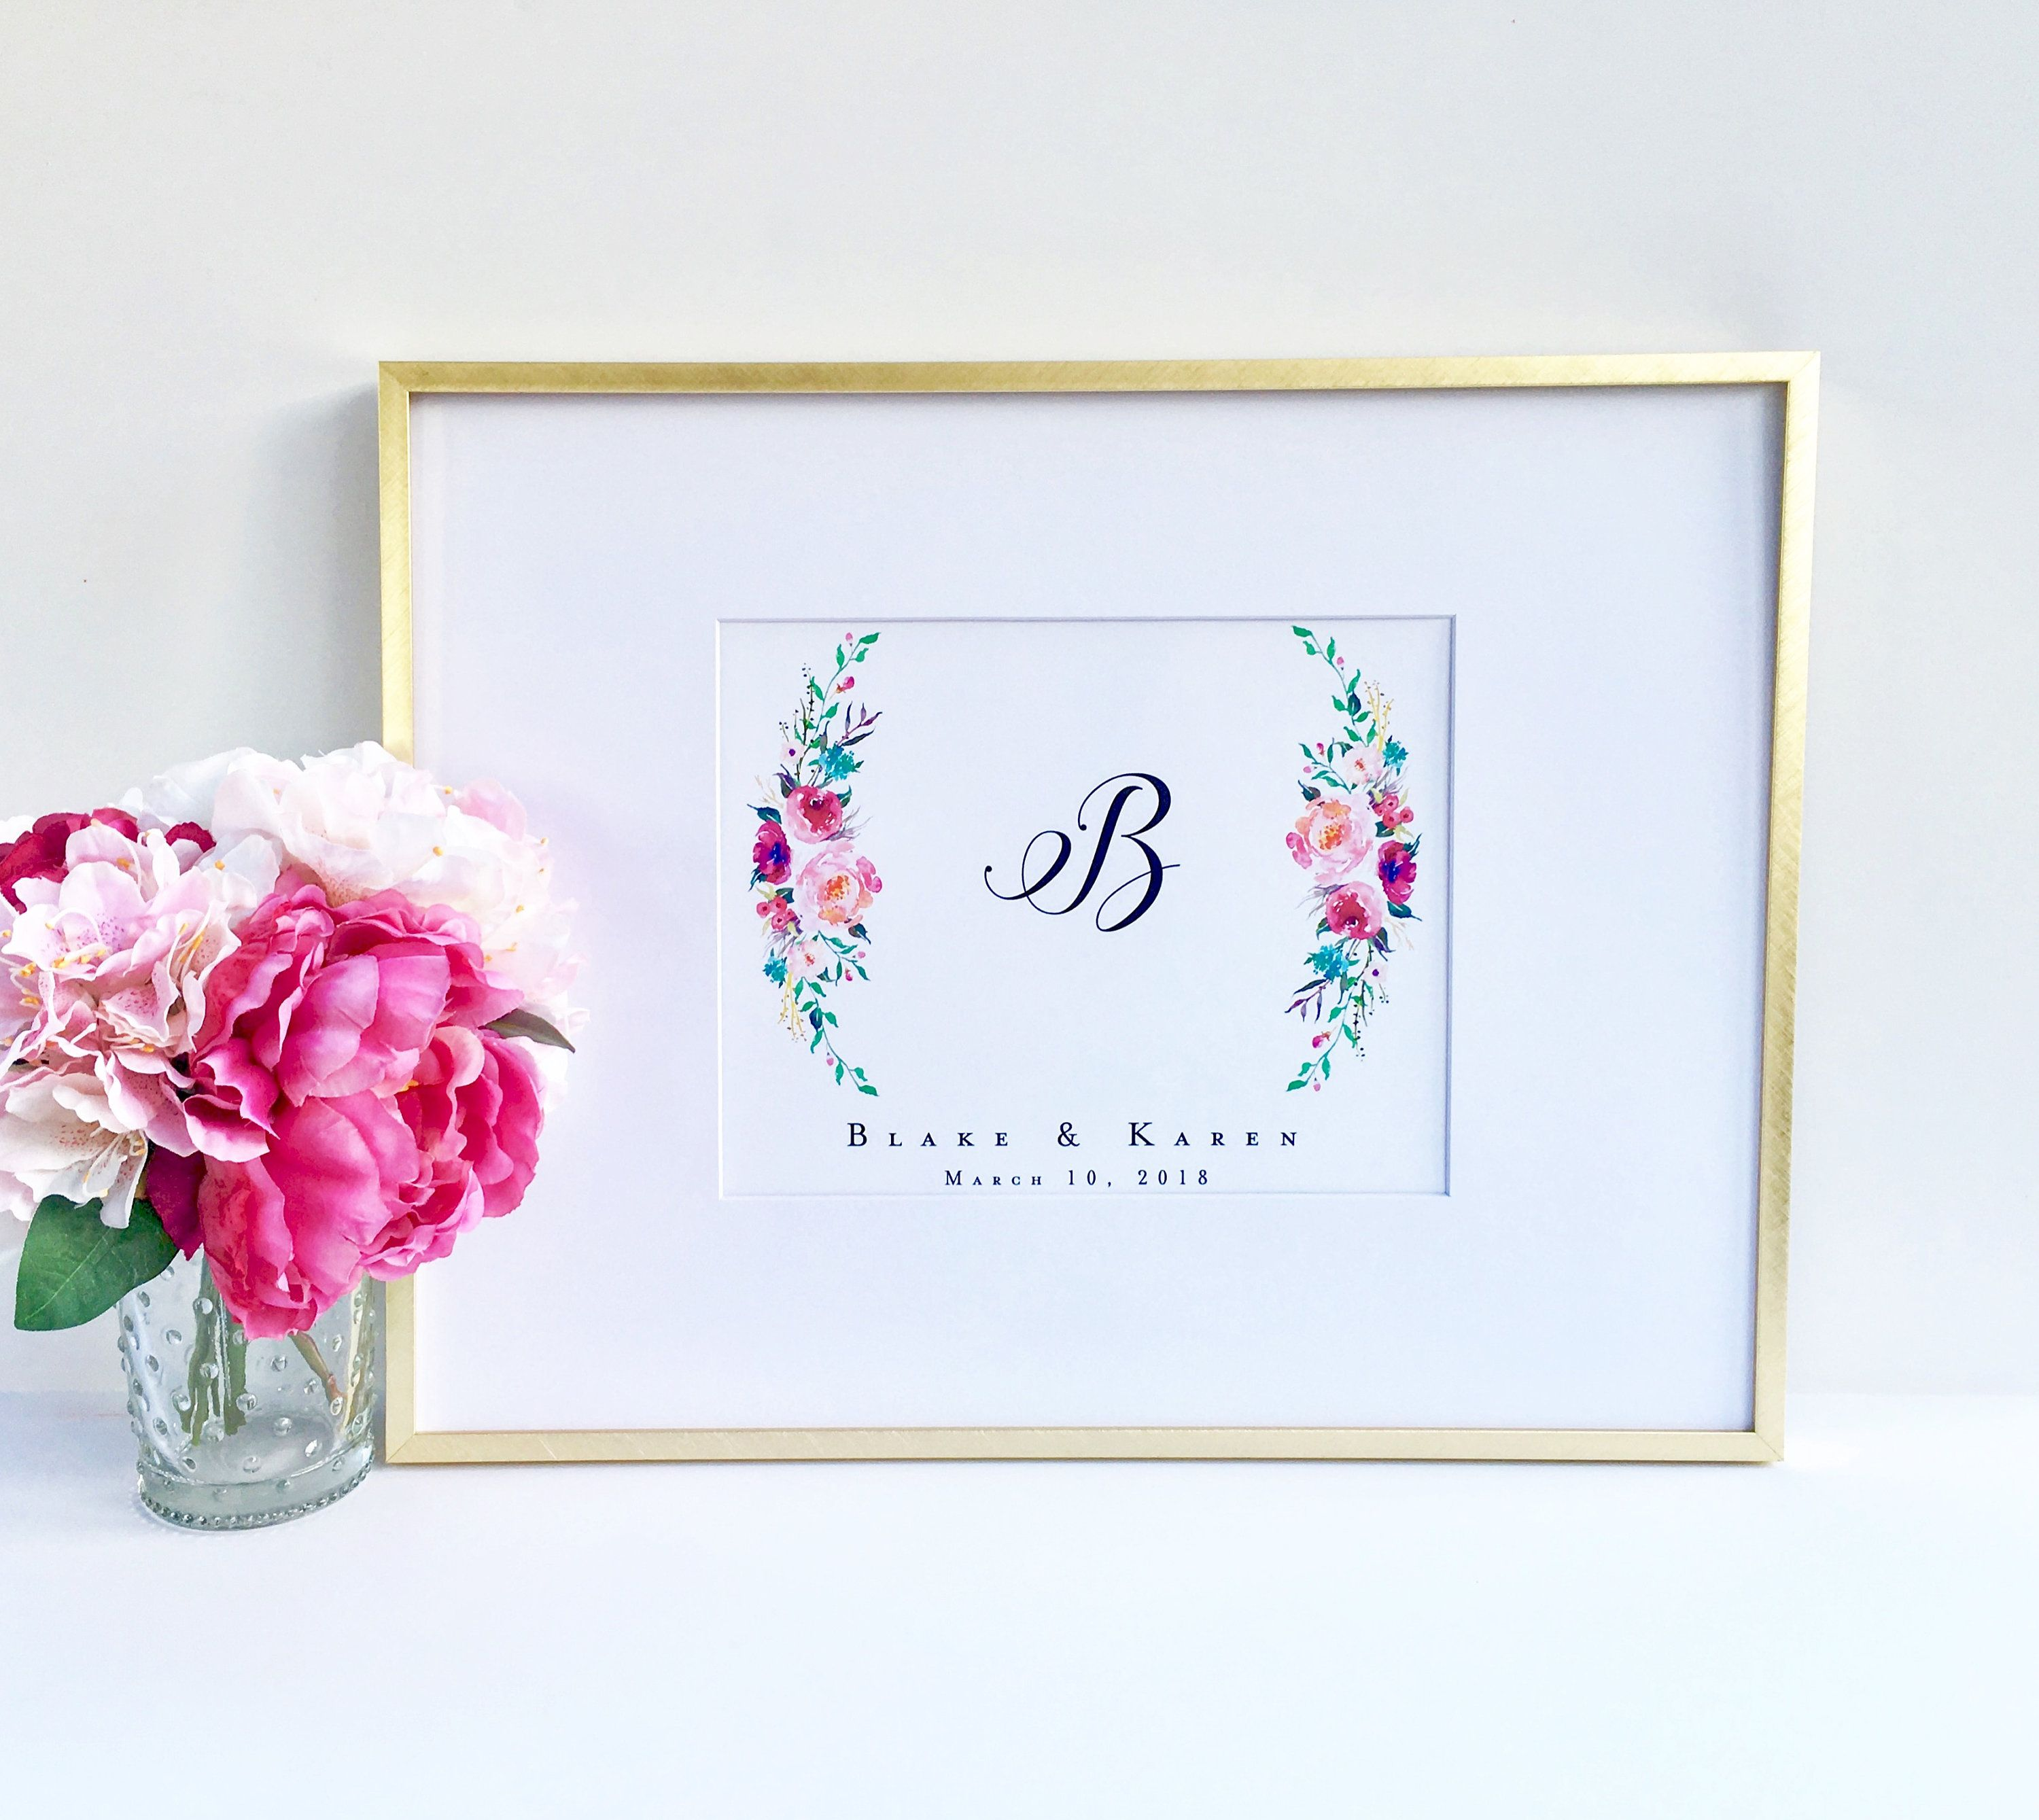 Personalized Wedding Gifts For Couple Floral Print Bride Groom Gift Couple N Personalized Wedding Gifts Personalised Wedding Presents Bride And Groom Gifts